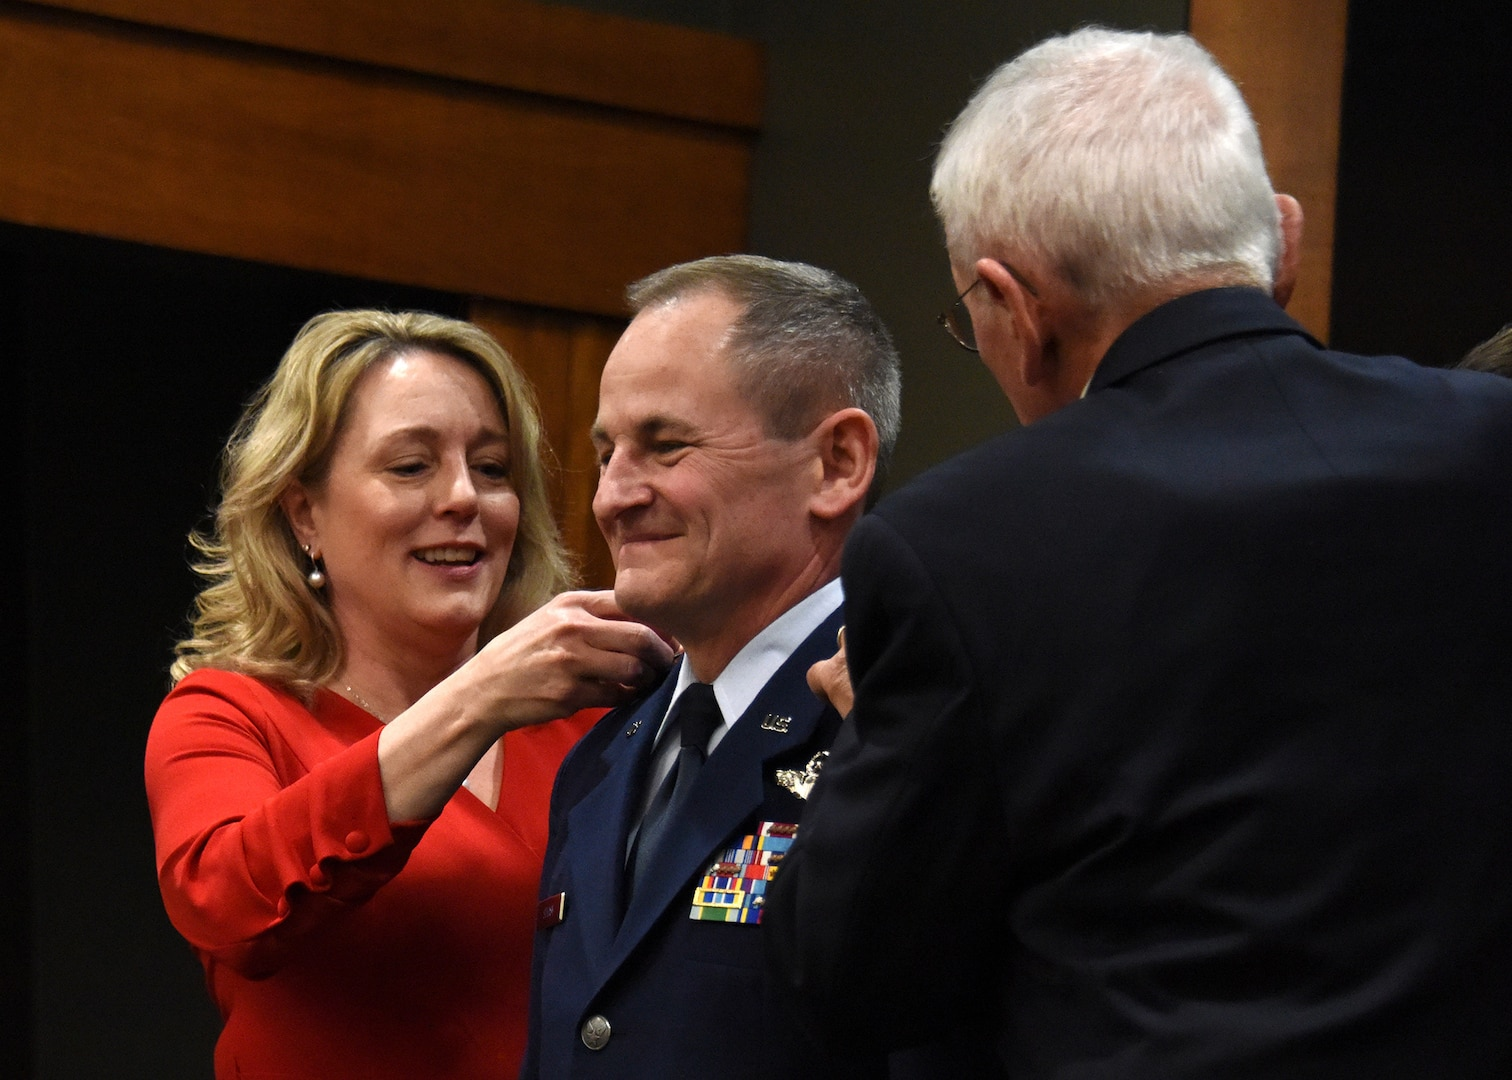 Wife, Cindy and dad, John, pin new rank on newly promoted Brig. Gen. James Silvasy, of Gurnee, Illinois, Illinois Air National Guard Chief of Staff, during a promotion ceremony March 8 at the Illinois Military Academy, Camp Lincoln, Springfield, Illinois.